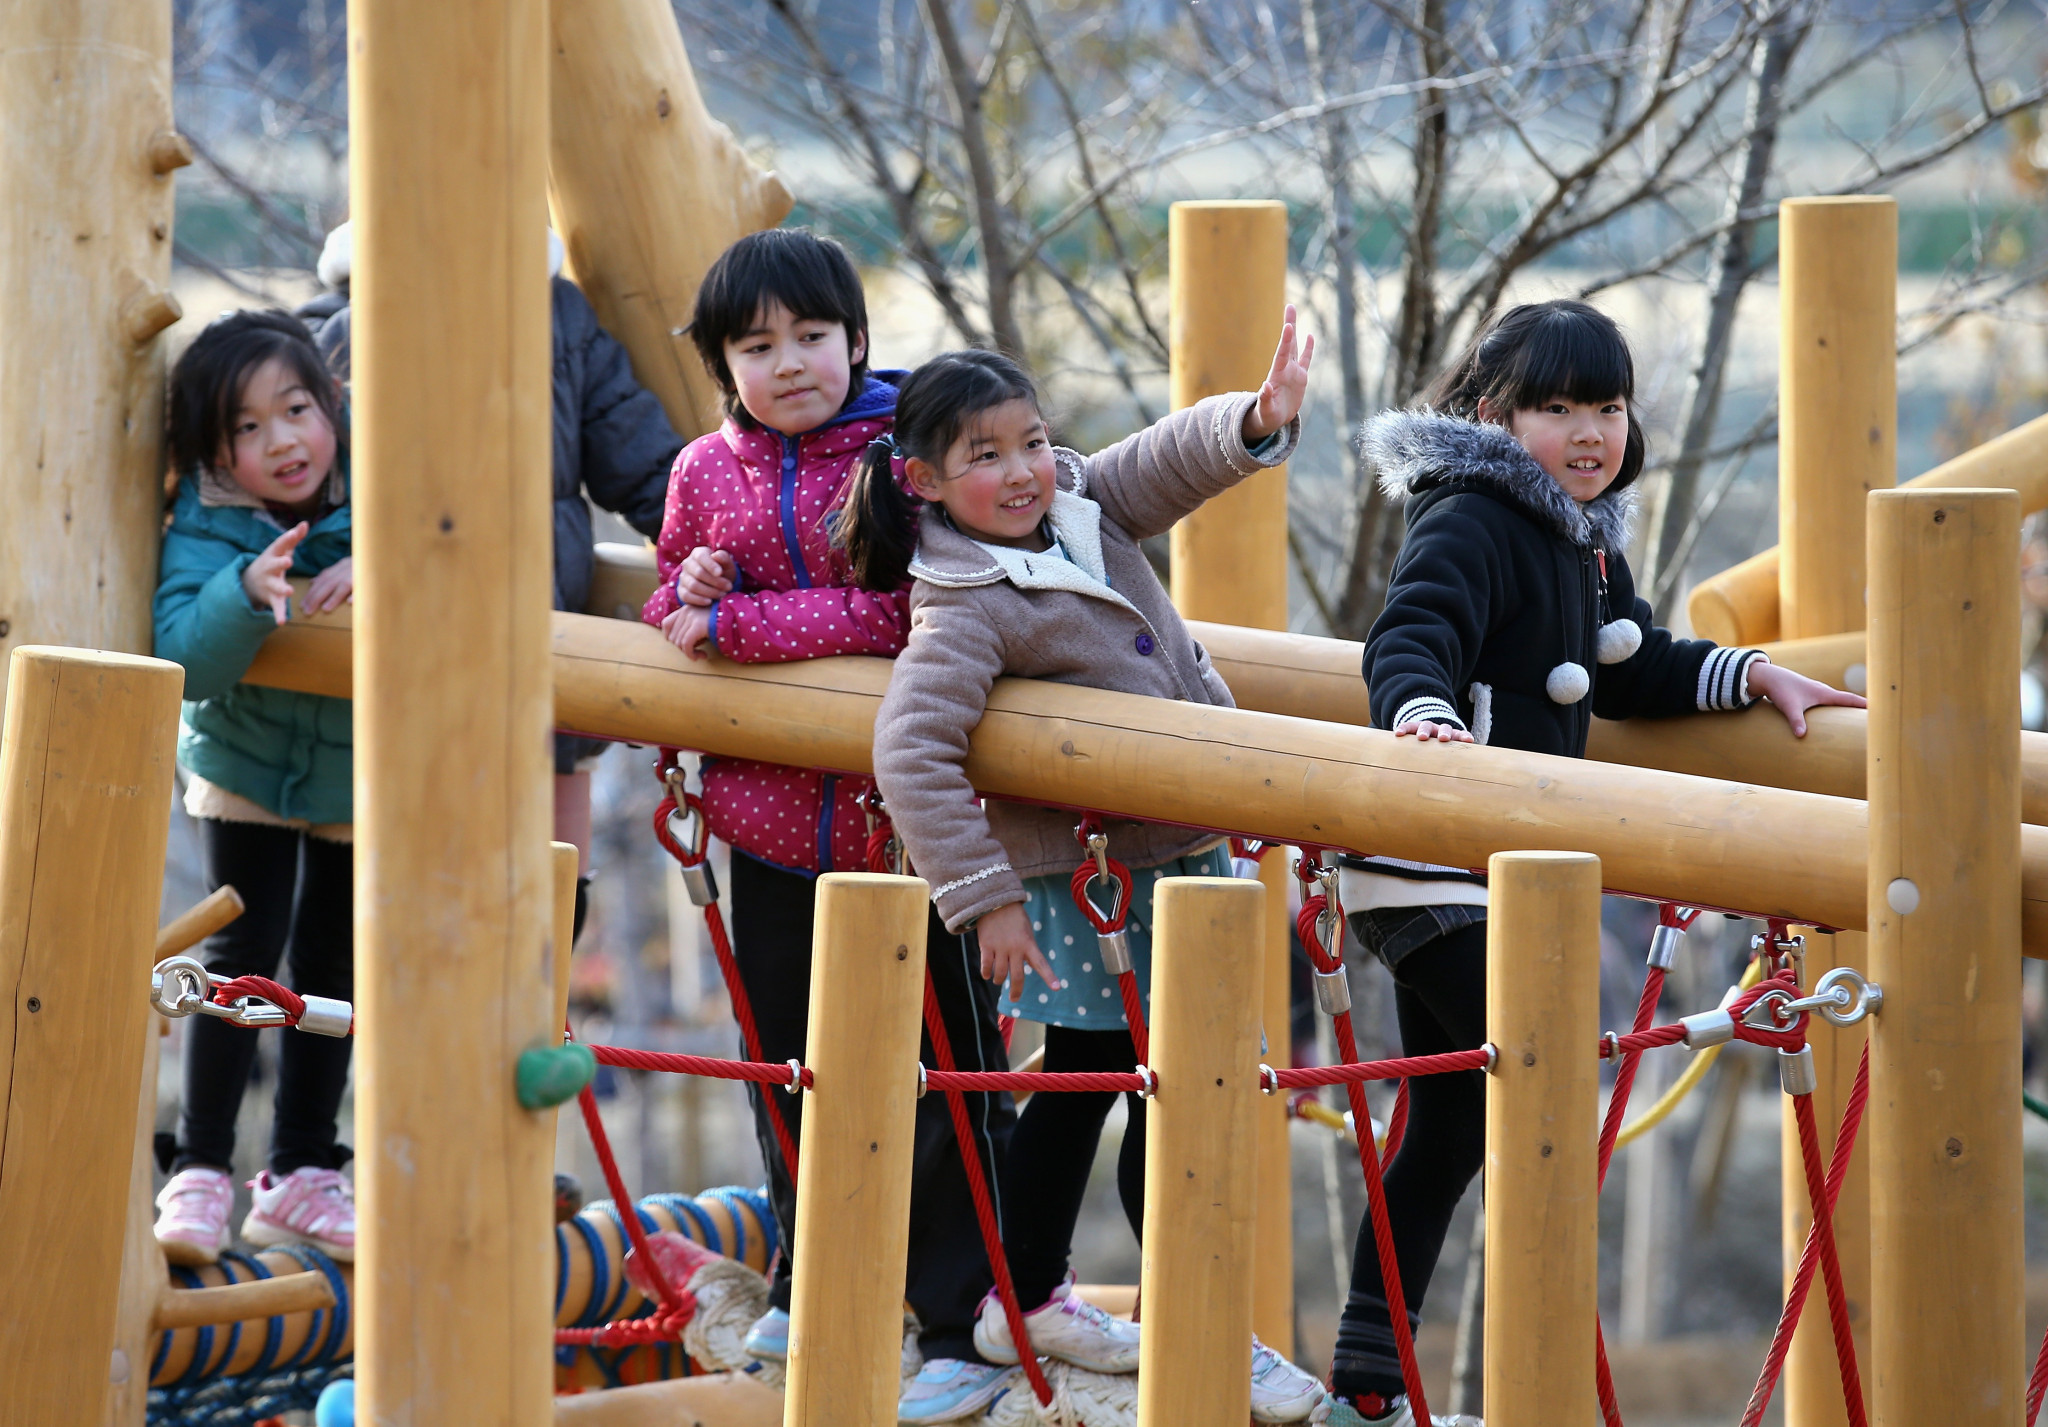 Children from Fukushima, one of the areas hit by the earthquake and tsunami in 2011, are to be invited to next year's Olympic Games by the Tokyo Metropolitan Government ©Getty Images